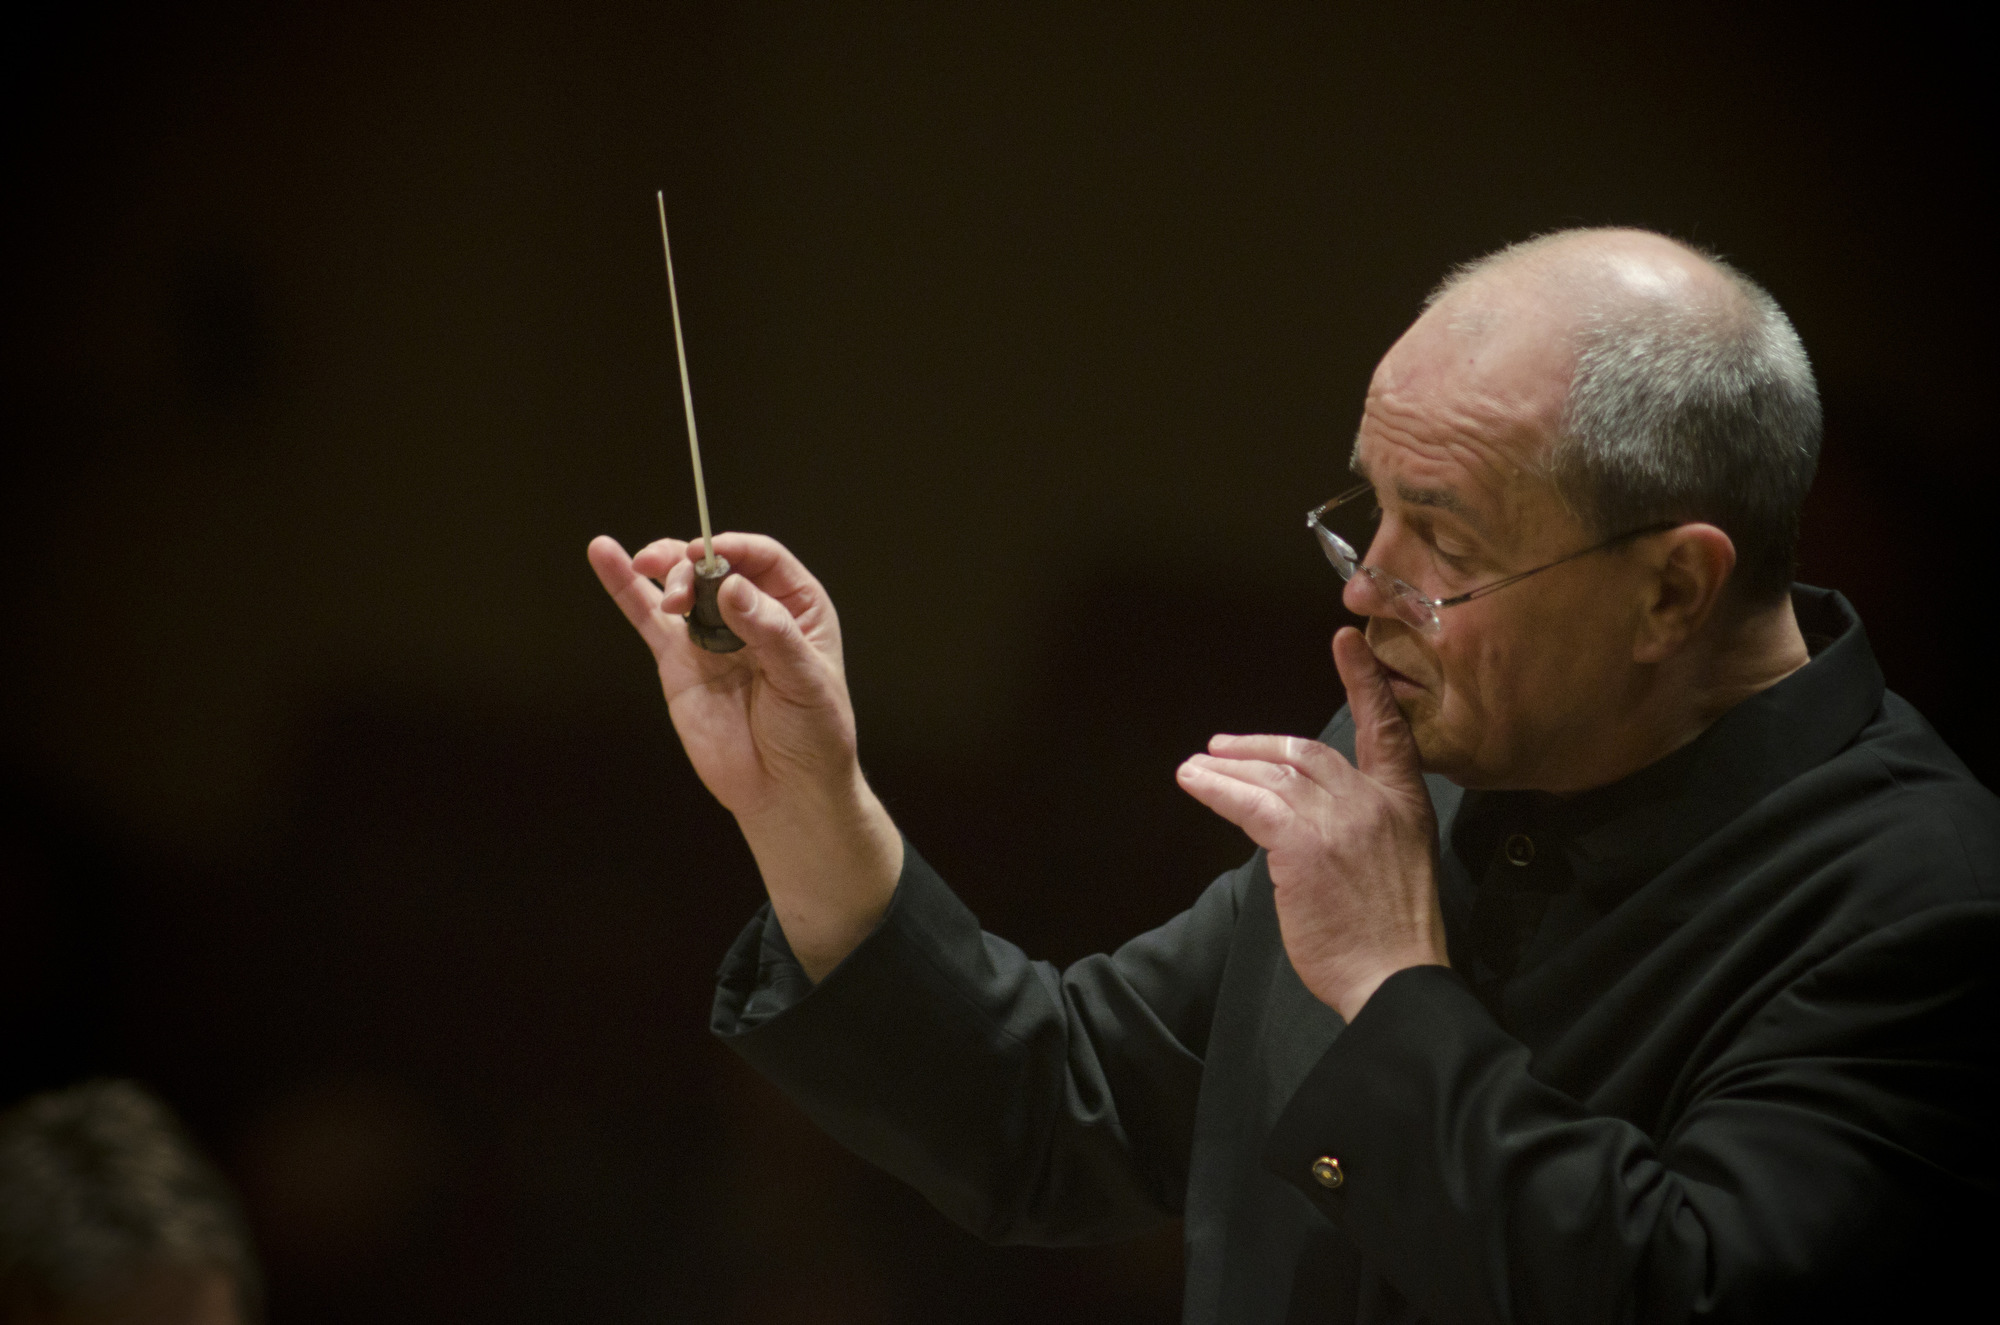 This is conductor Hans Graf's last season as music director of the Houston Symphony; beginning in the 2013-14 year, he will be the orchestra's Conductor Laureate.